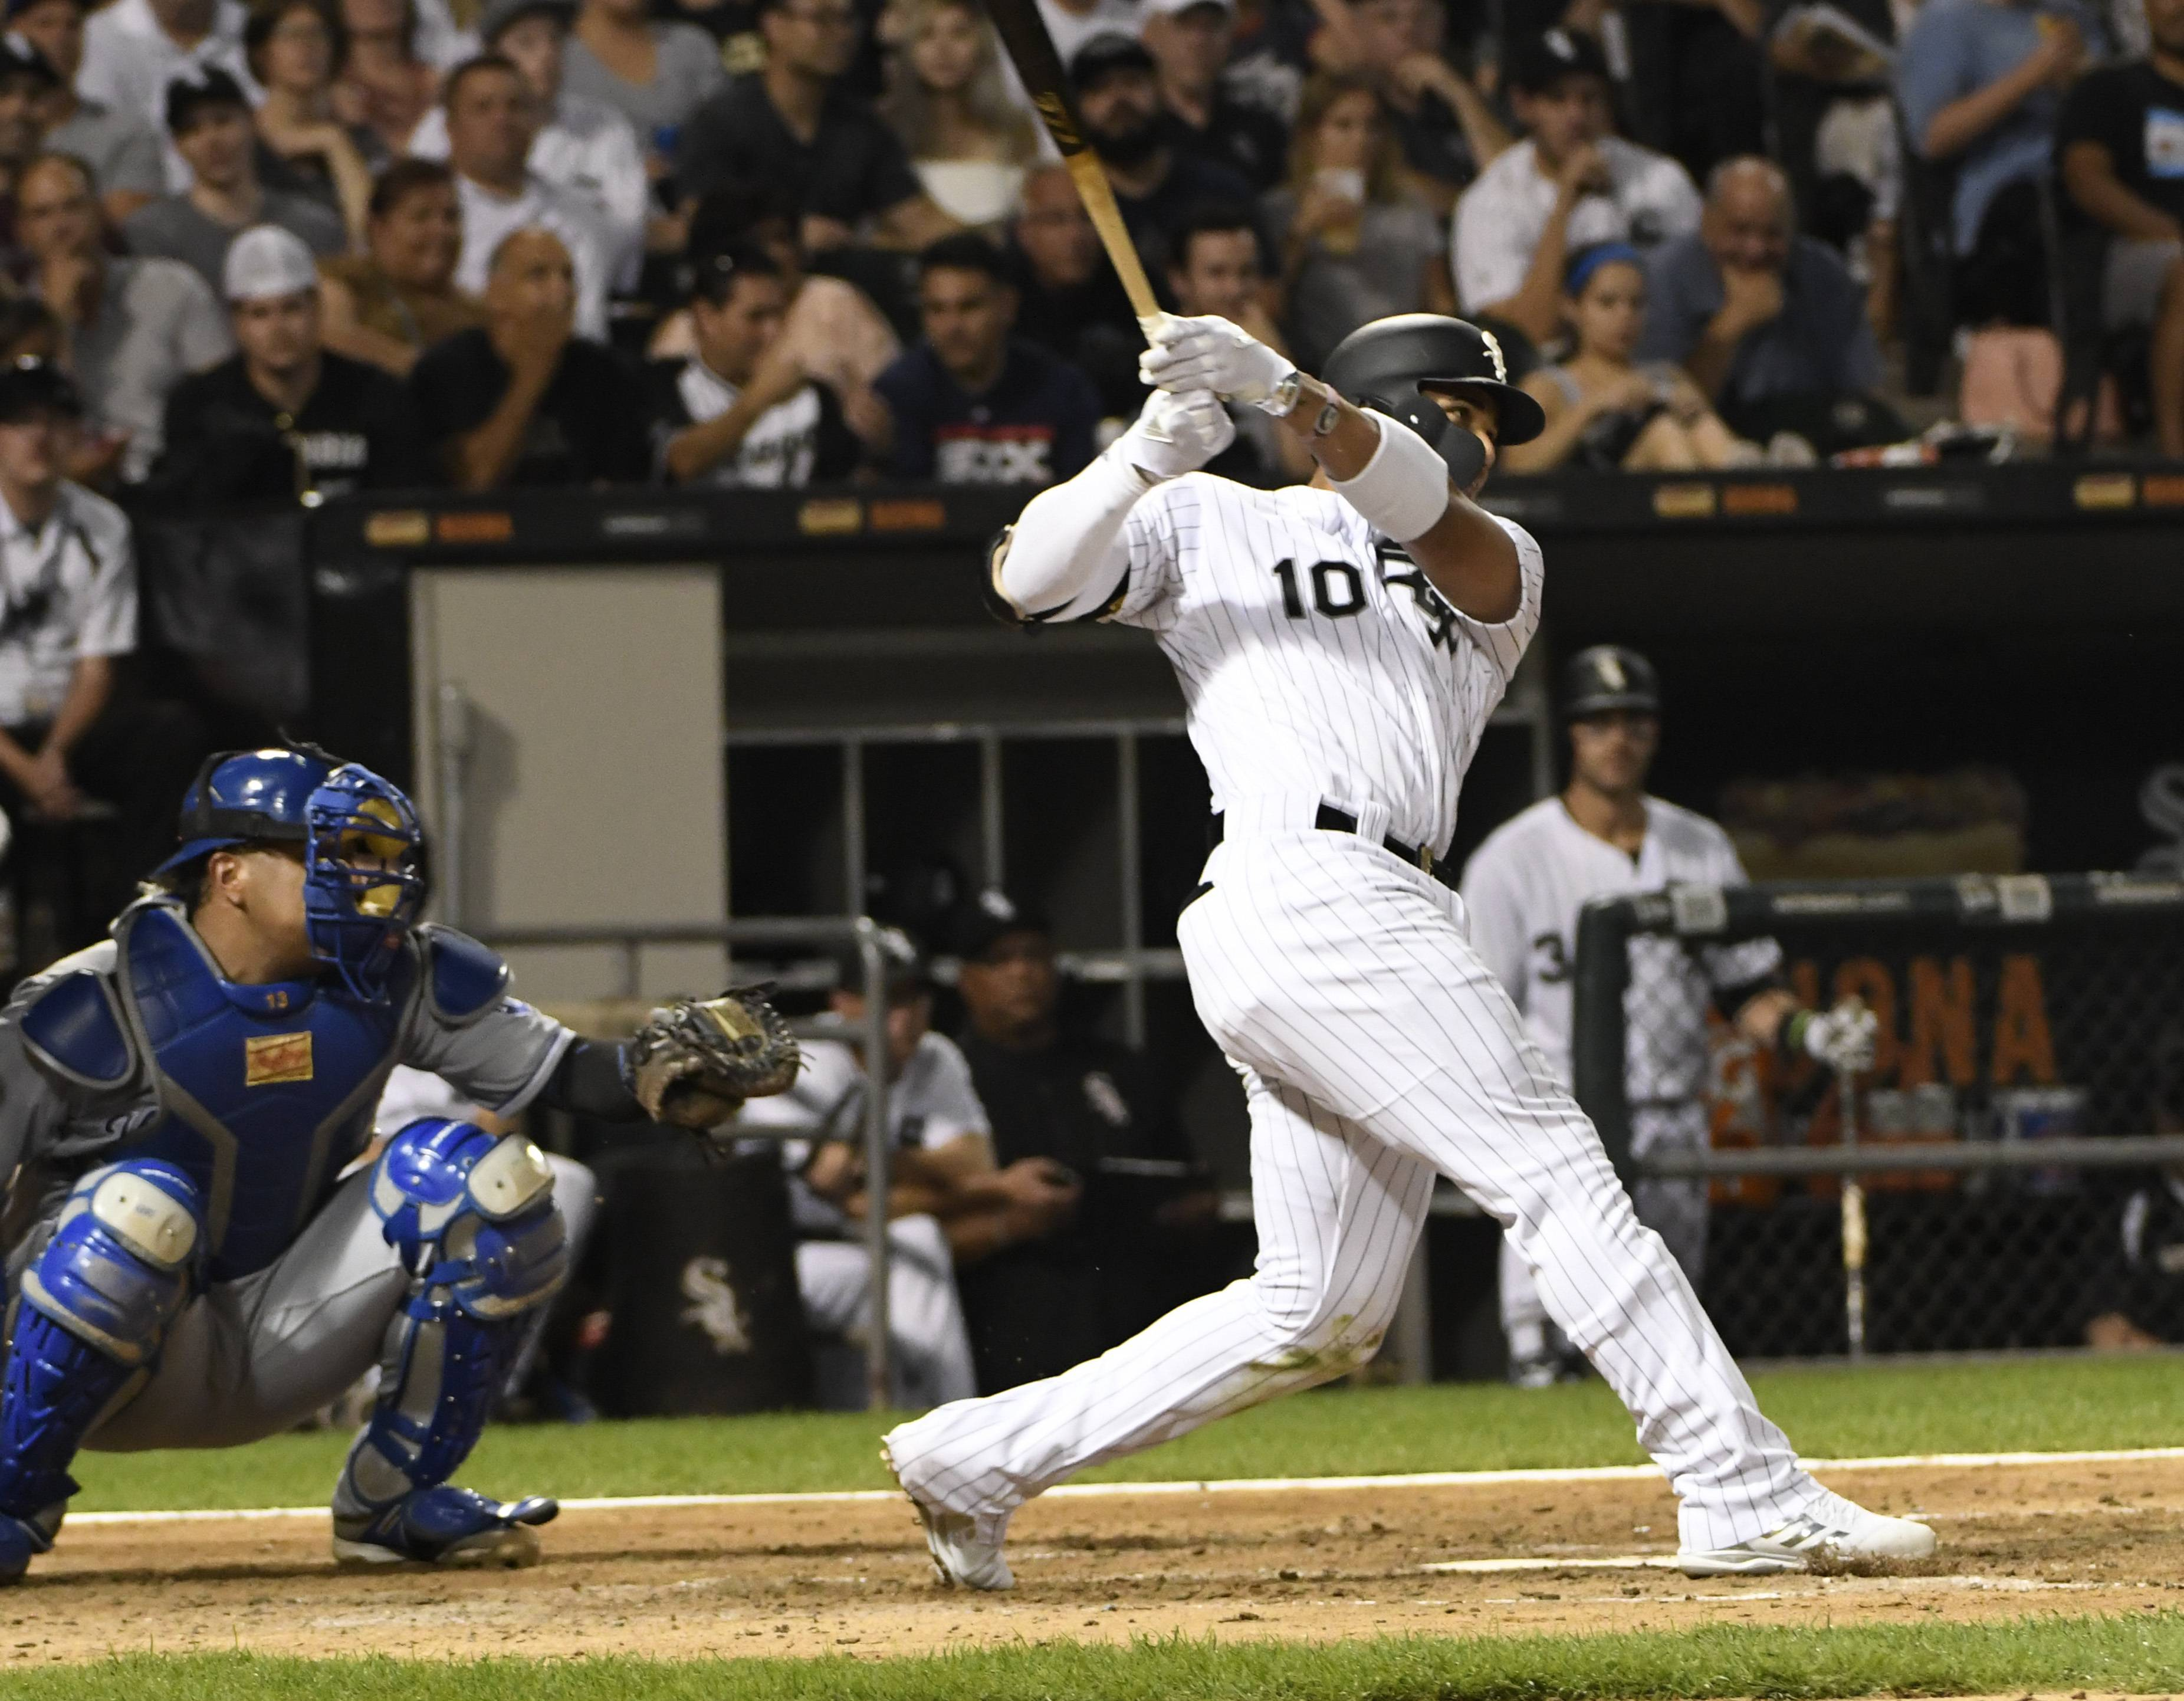 Yoan Moncada was held out of the Chicago White Sox lineup Monday night against the Angels after his sore right shin flared up.